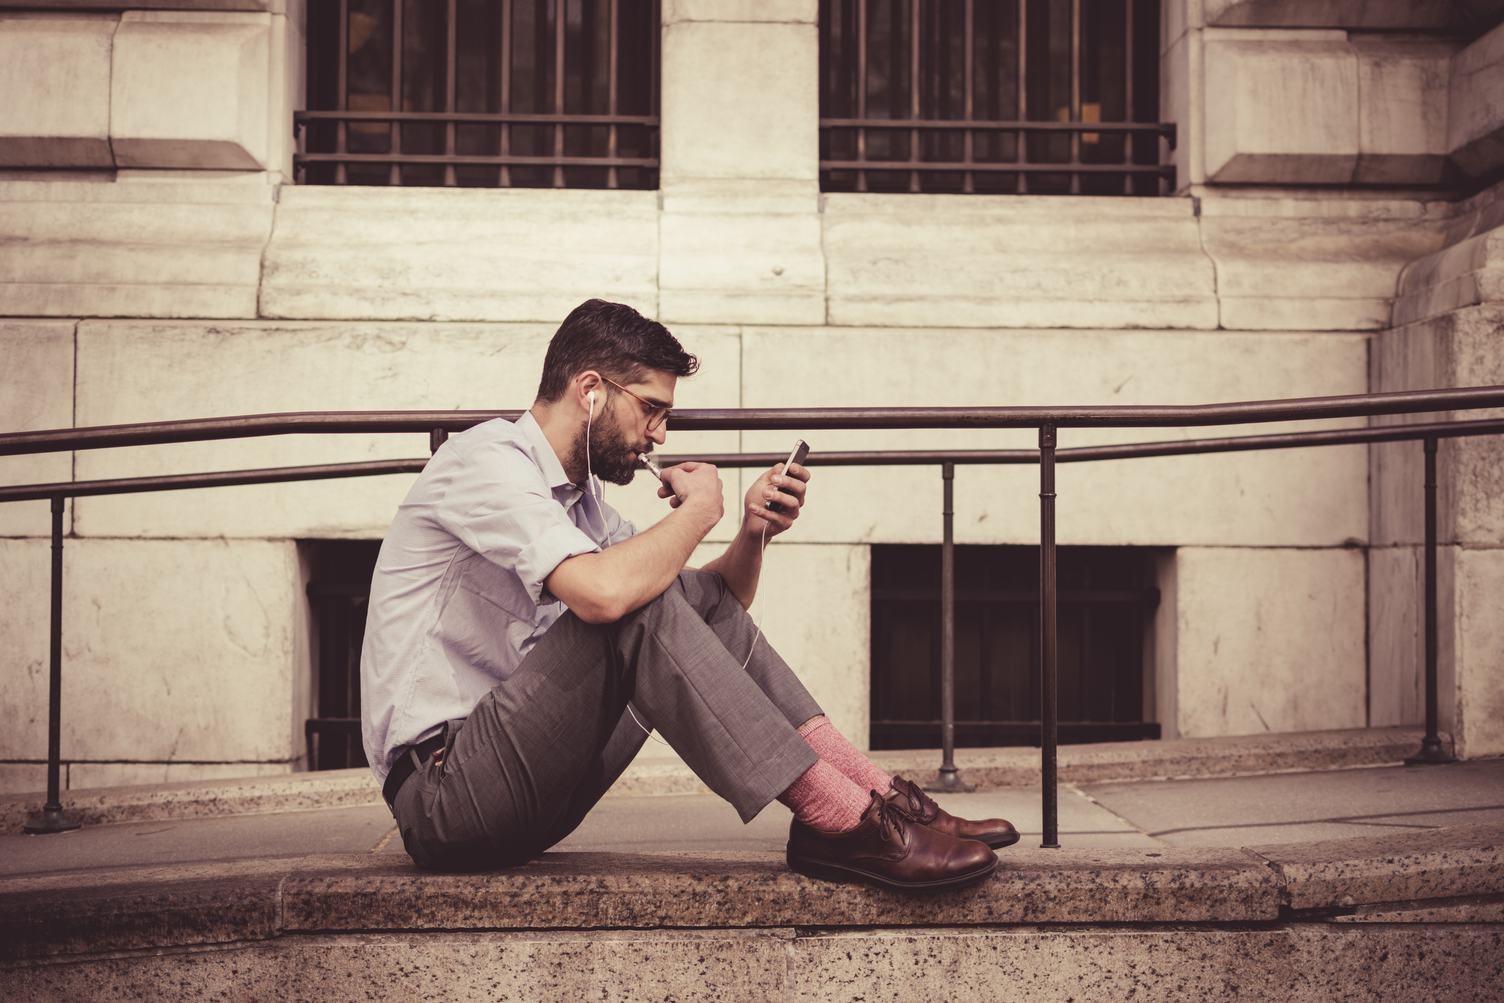 Man Sitting on the Floor in Front of a Building